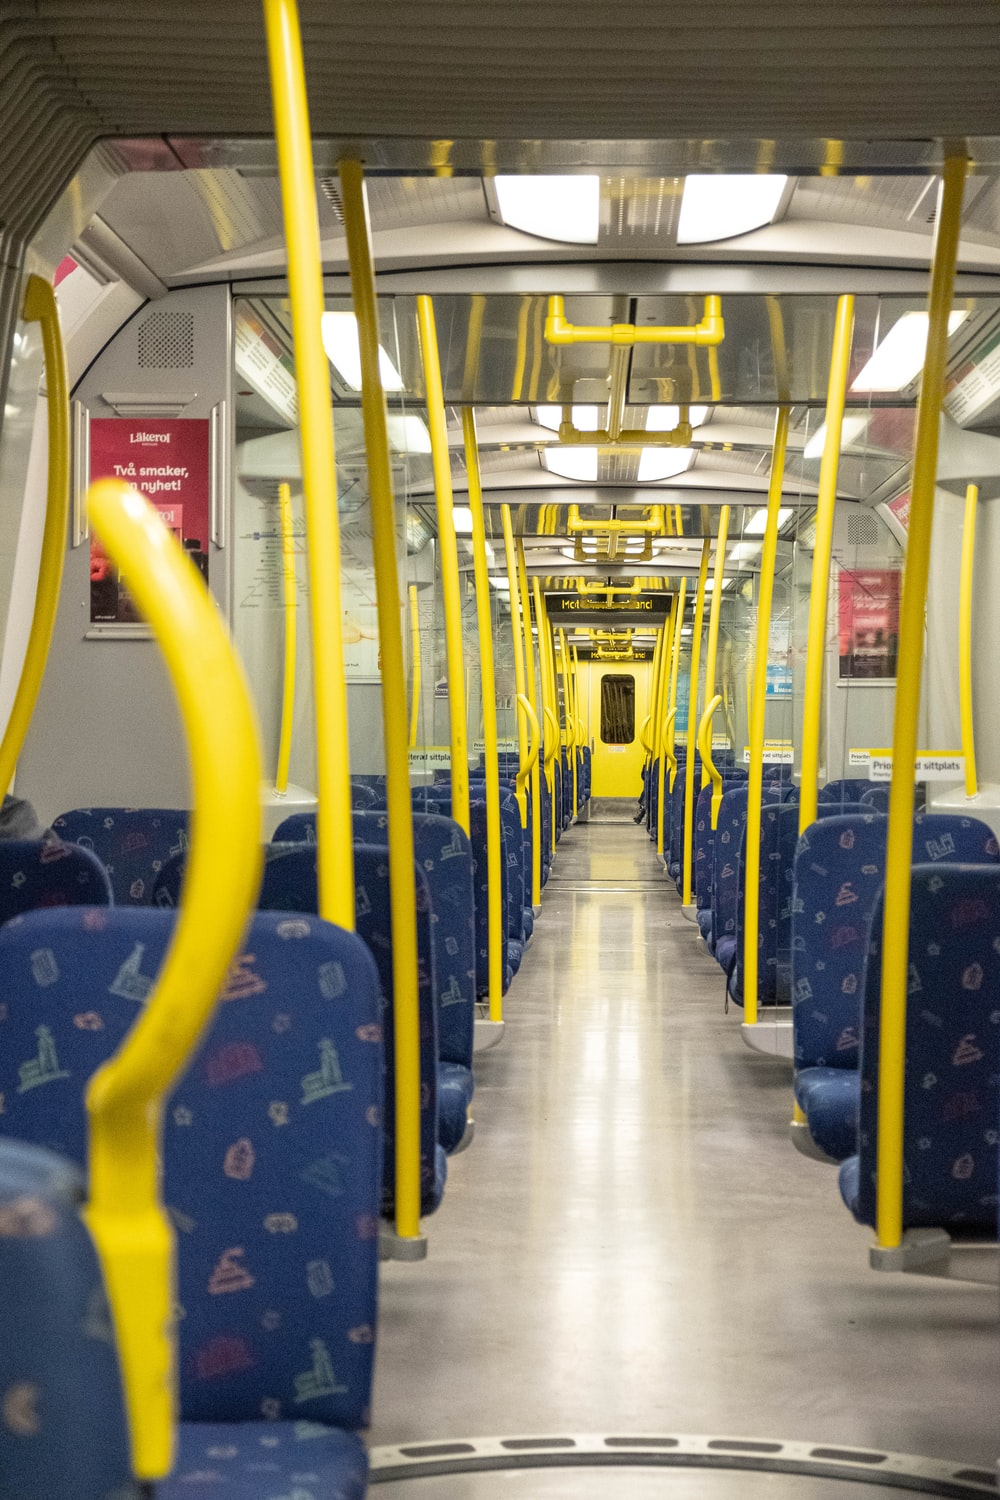 blue and yellow train seats